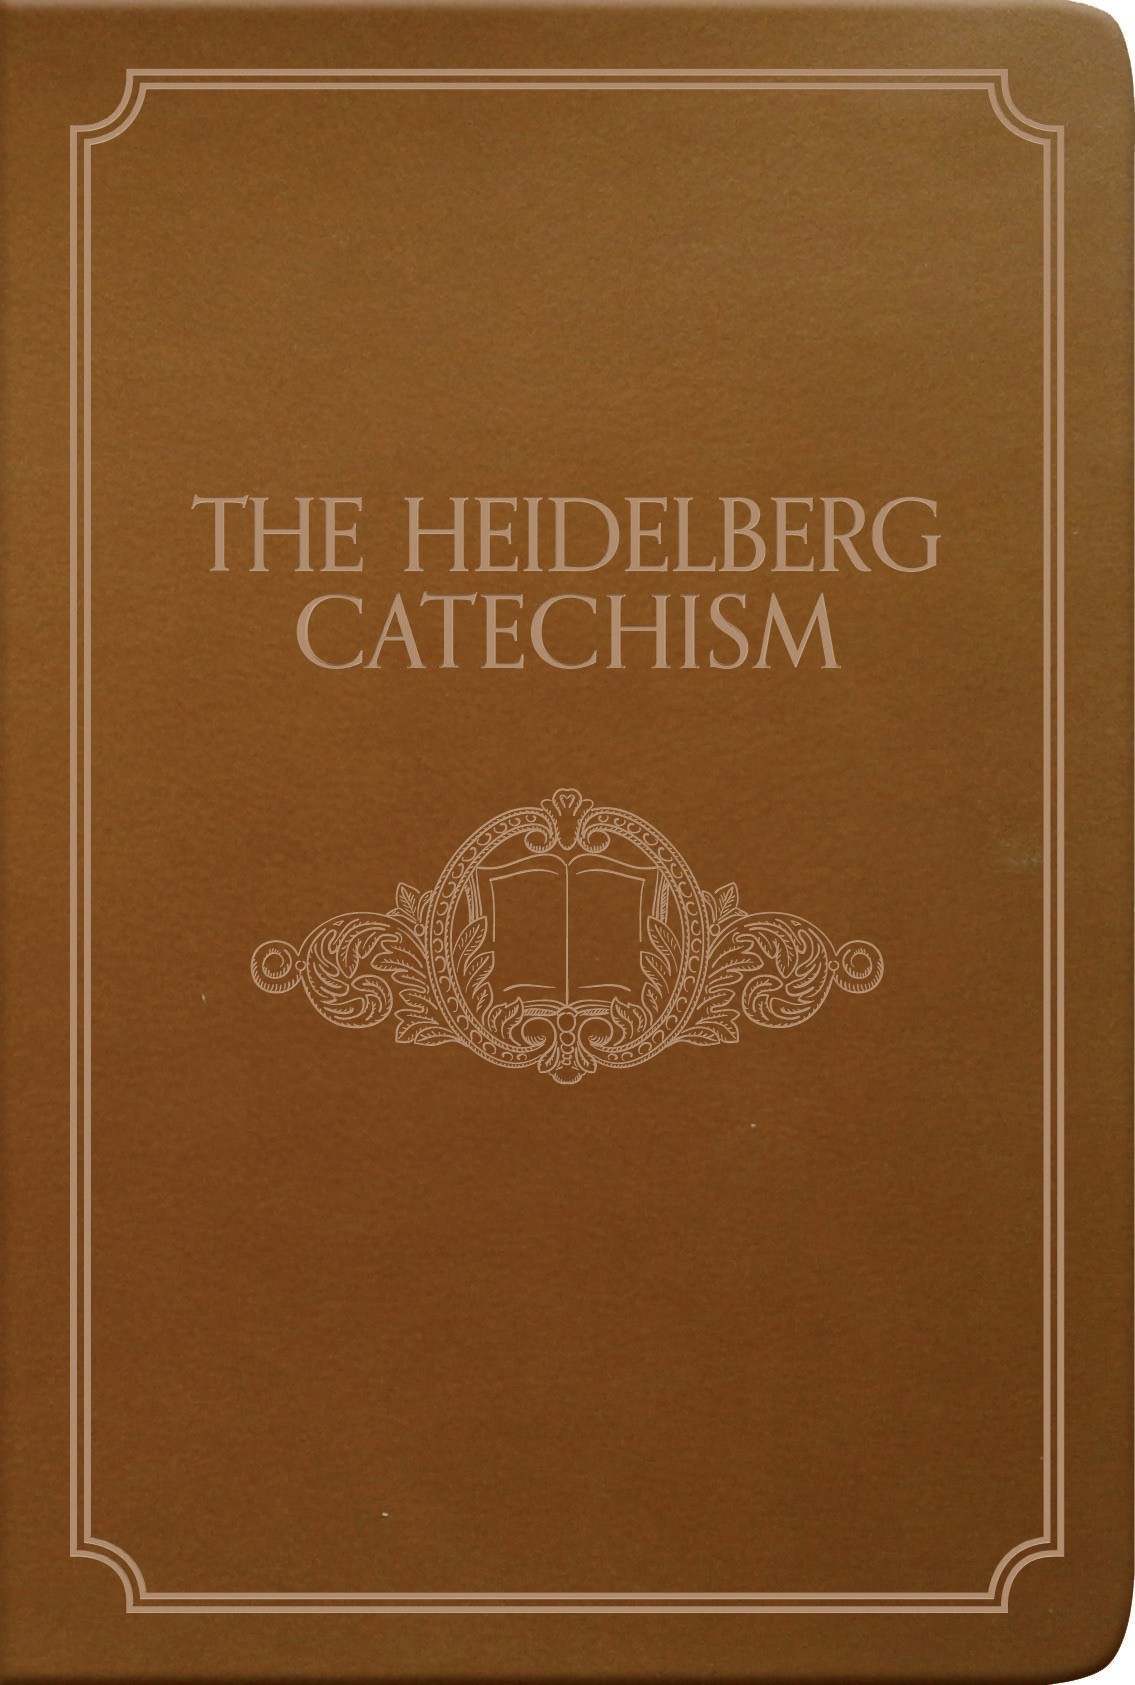 Book cover graphic for Heidelberg Catechism gift edition